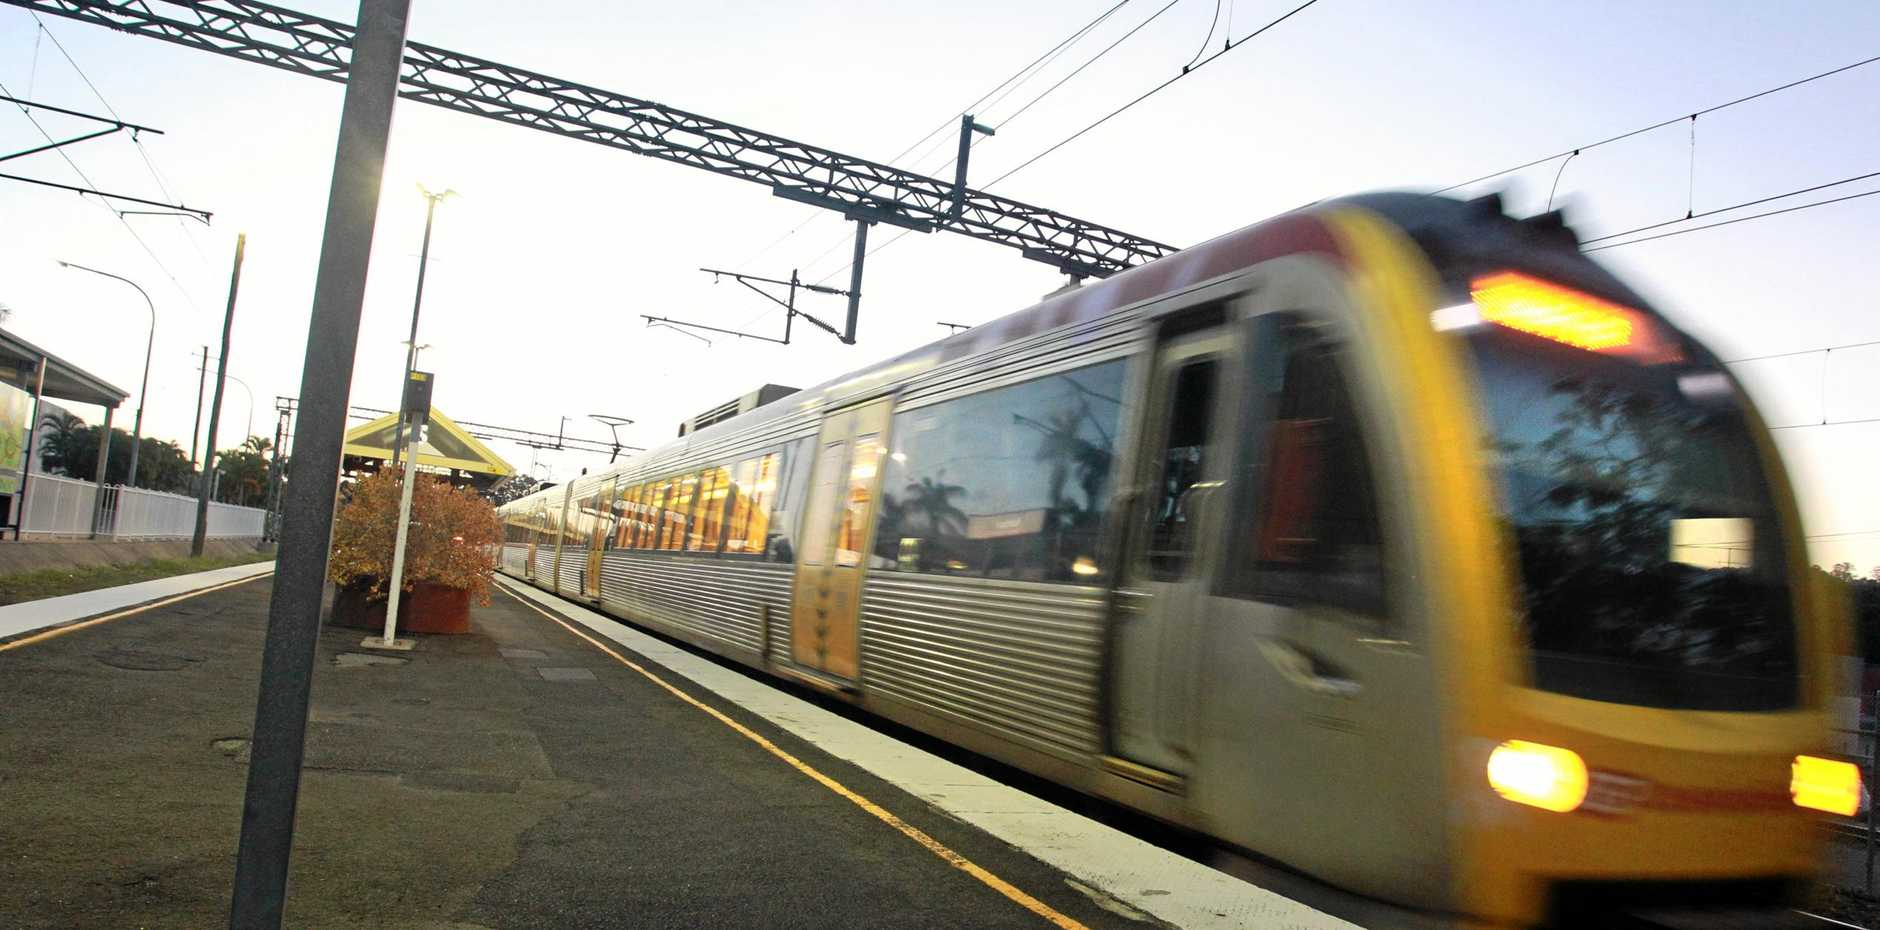 The Wednesday afternoon train from Brisbane arrives at the Nambour Railway Station at 7pm. Story about a day in the life of commuters to Brisbane on our trains by Kathy Sundstrom.Photo: Brett Wortman / Sunshine Coast Daily